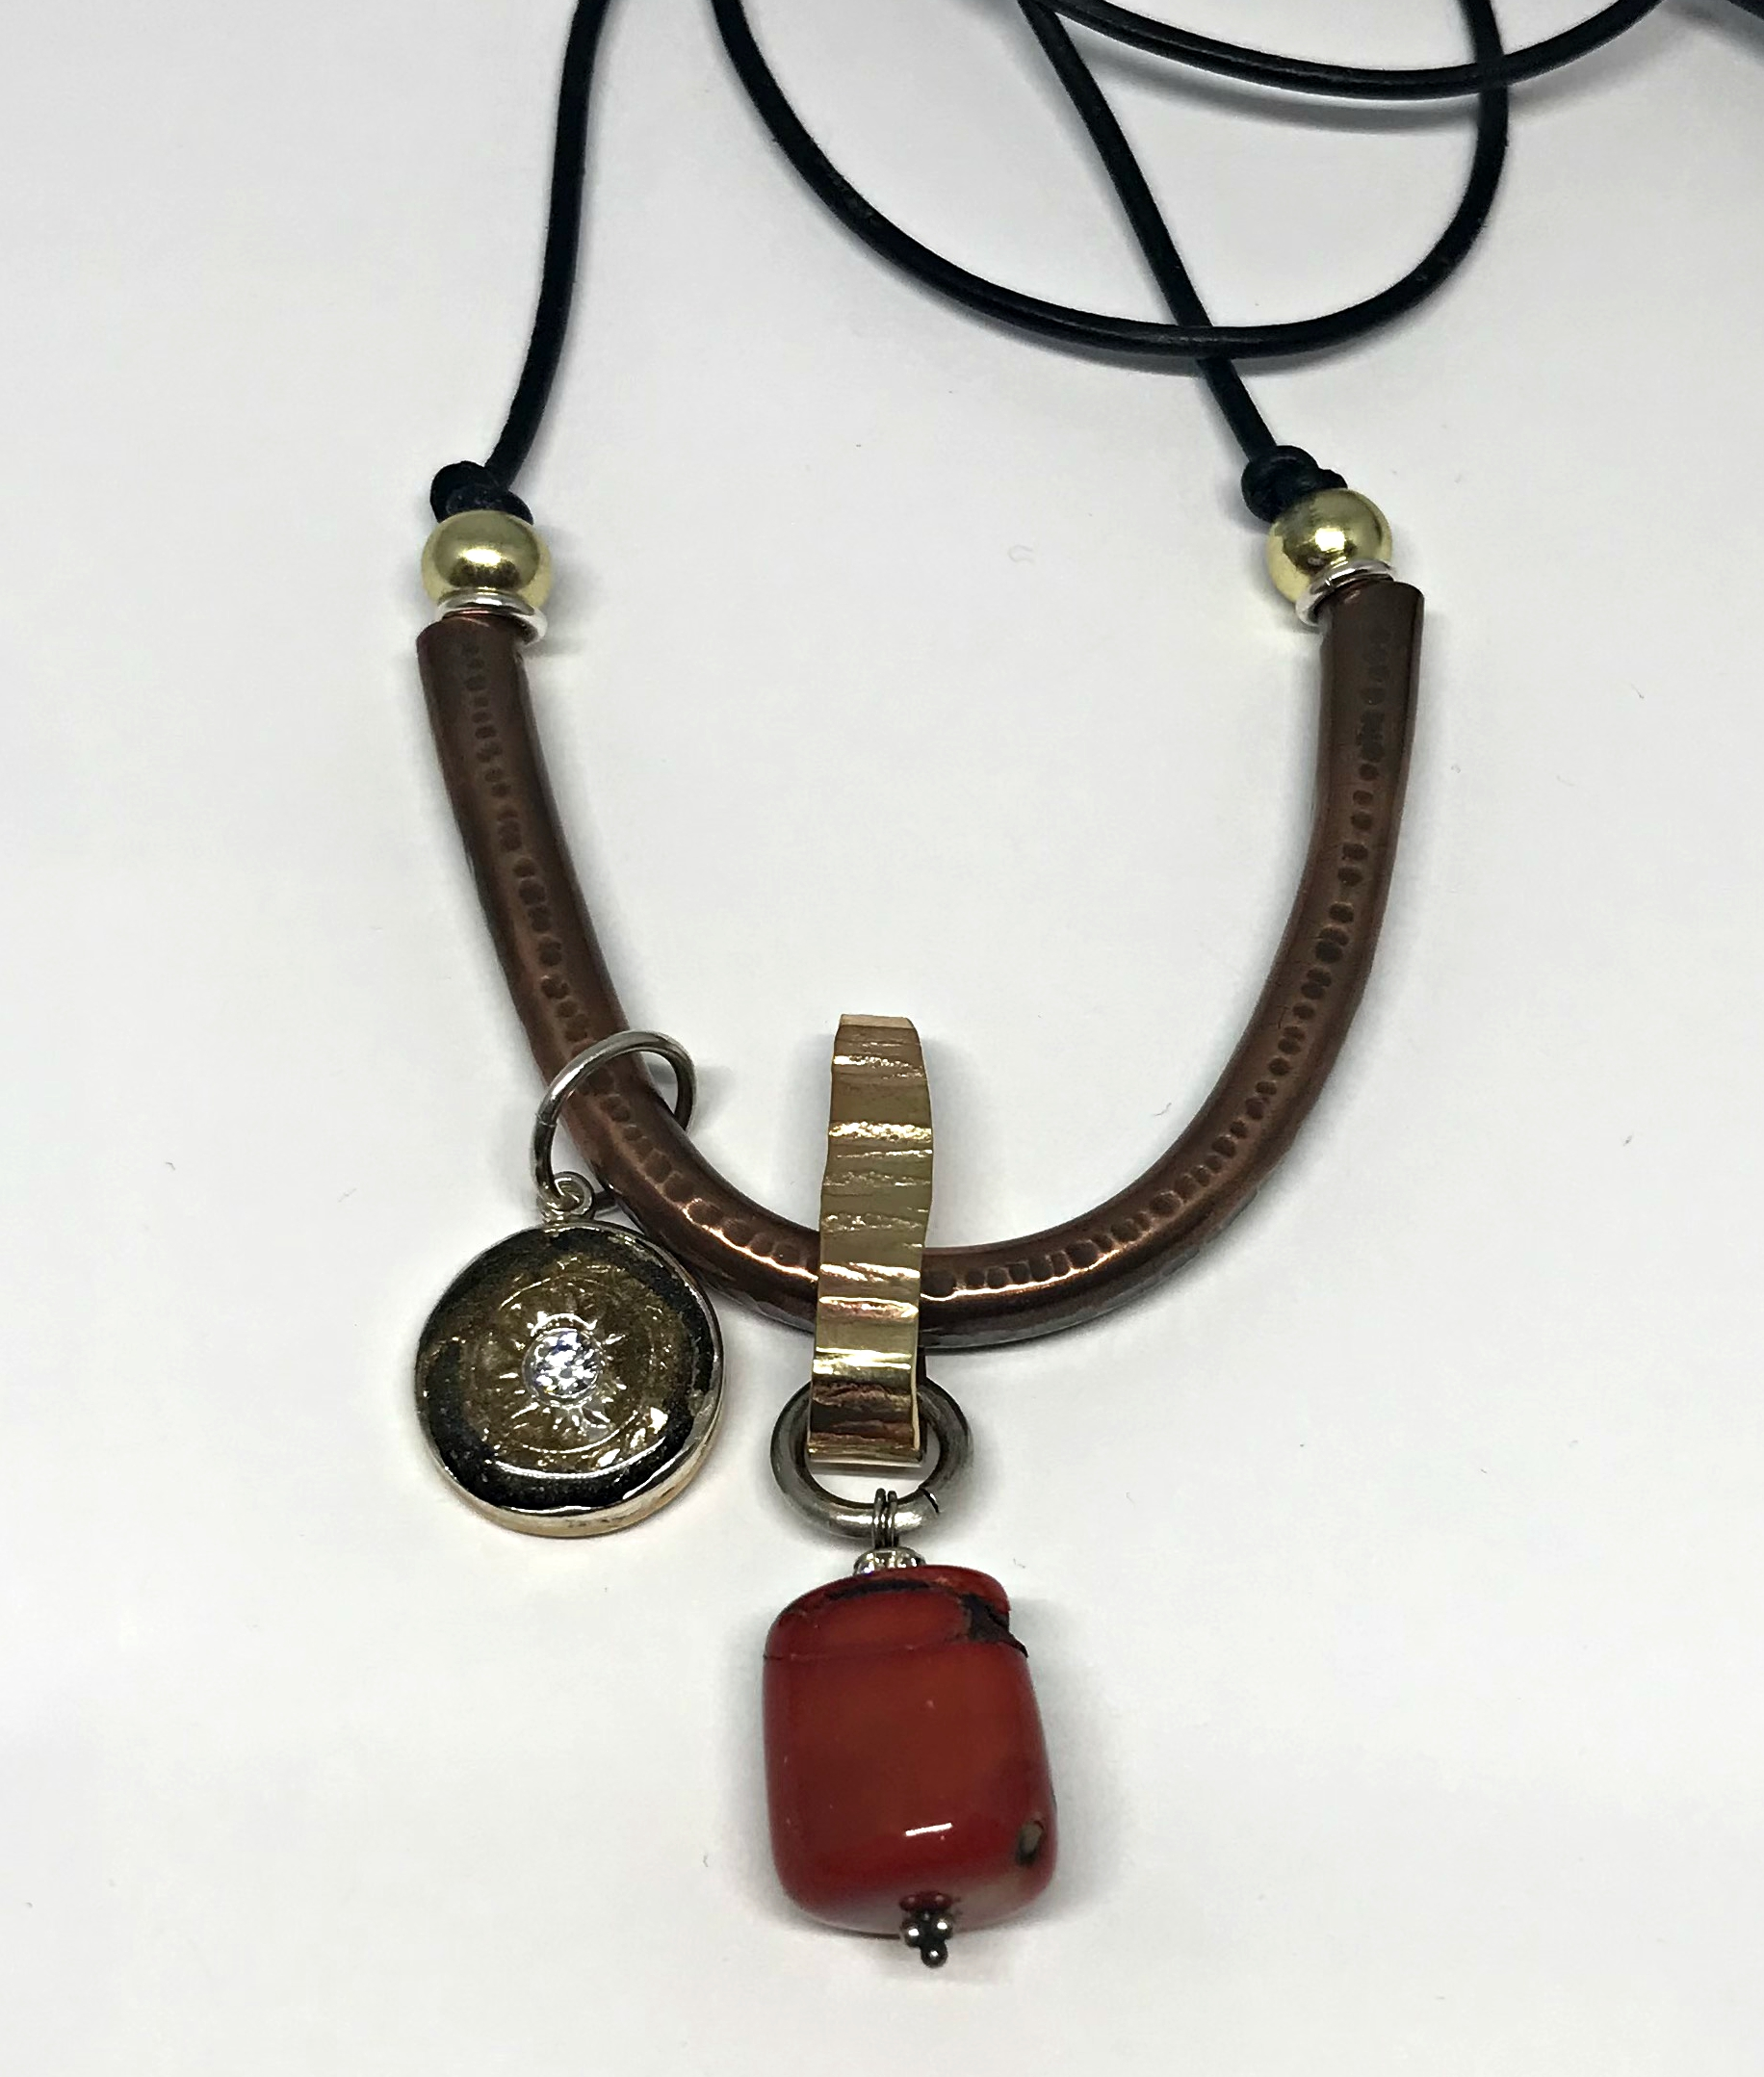 Elbisrever Necklace by Karyn Chopik   Effusion Art Gallery + Cast Glass Studio, Invermere BC